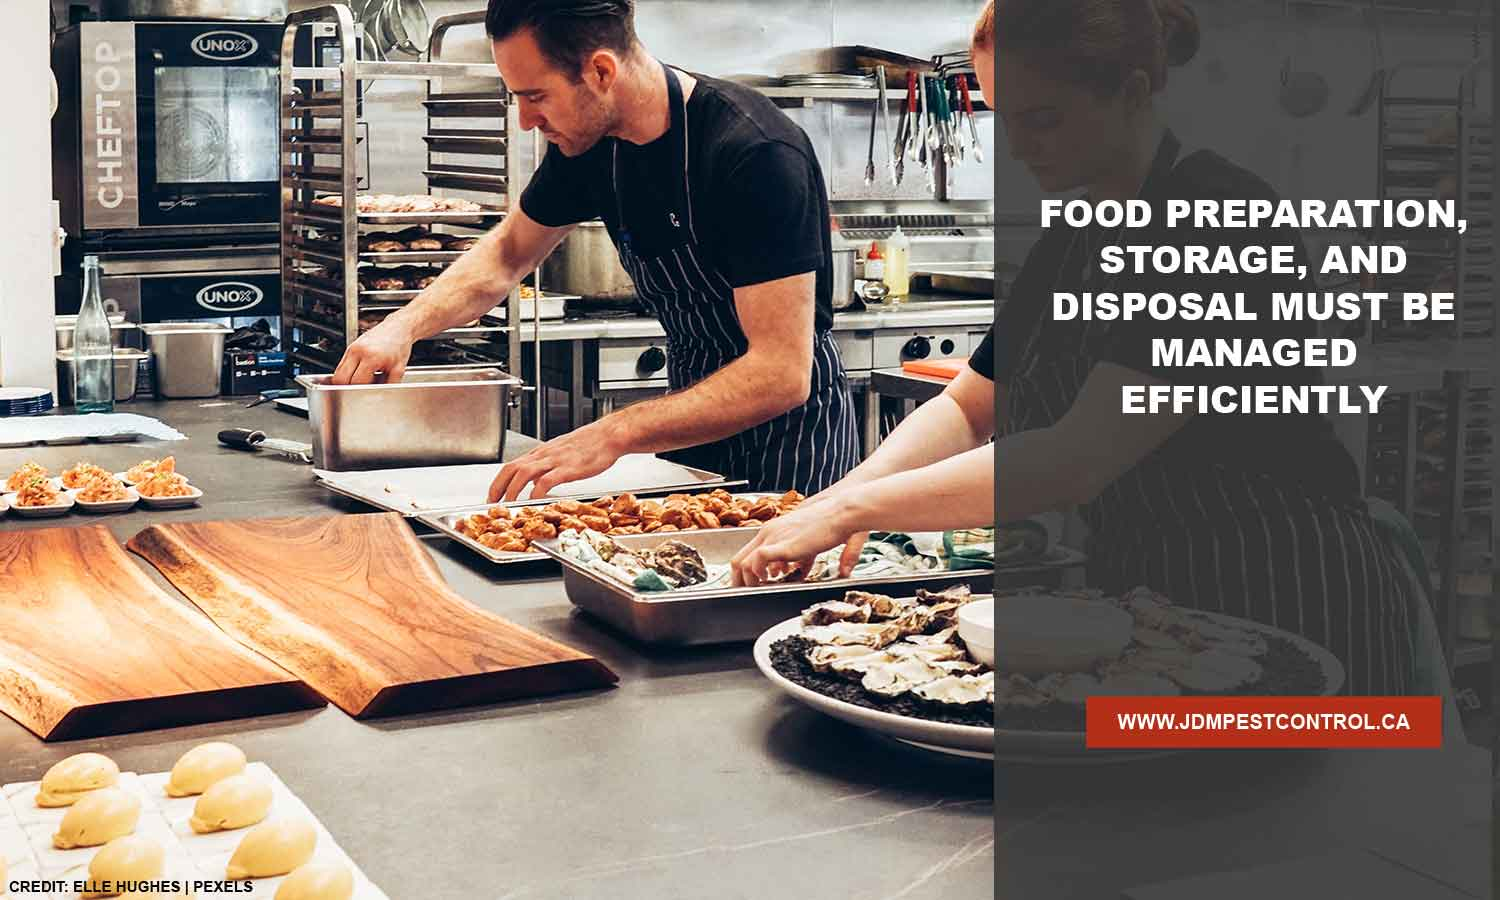 Food preparation, storage, and disposal must be managed efficiently